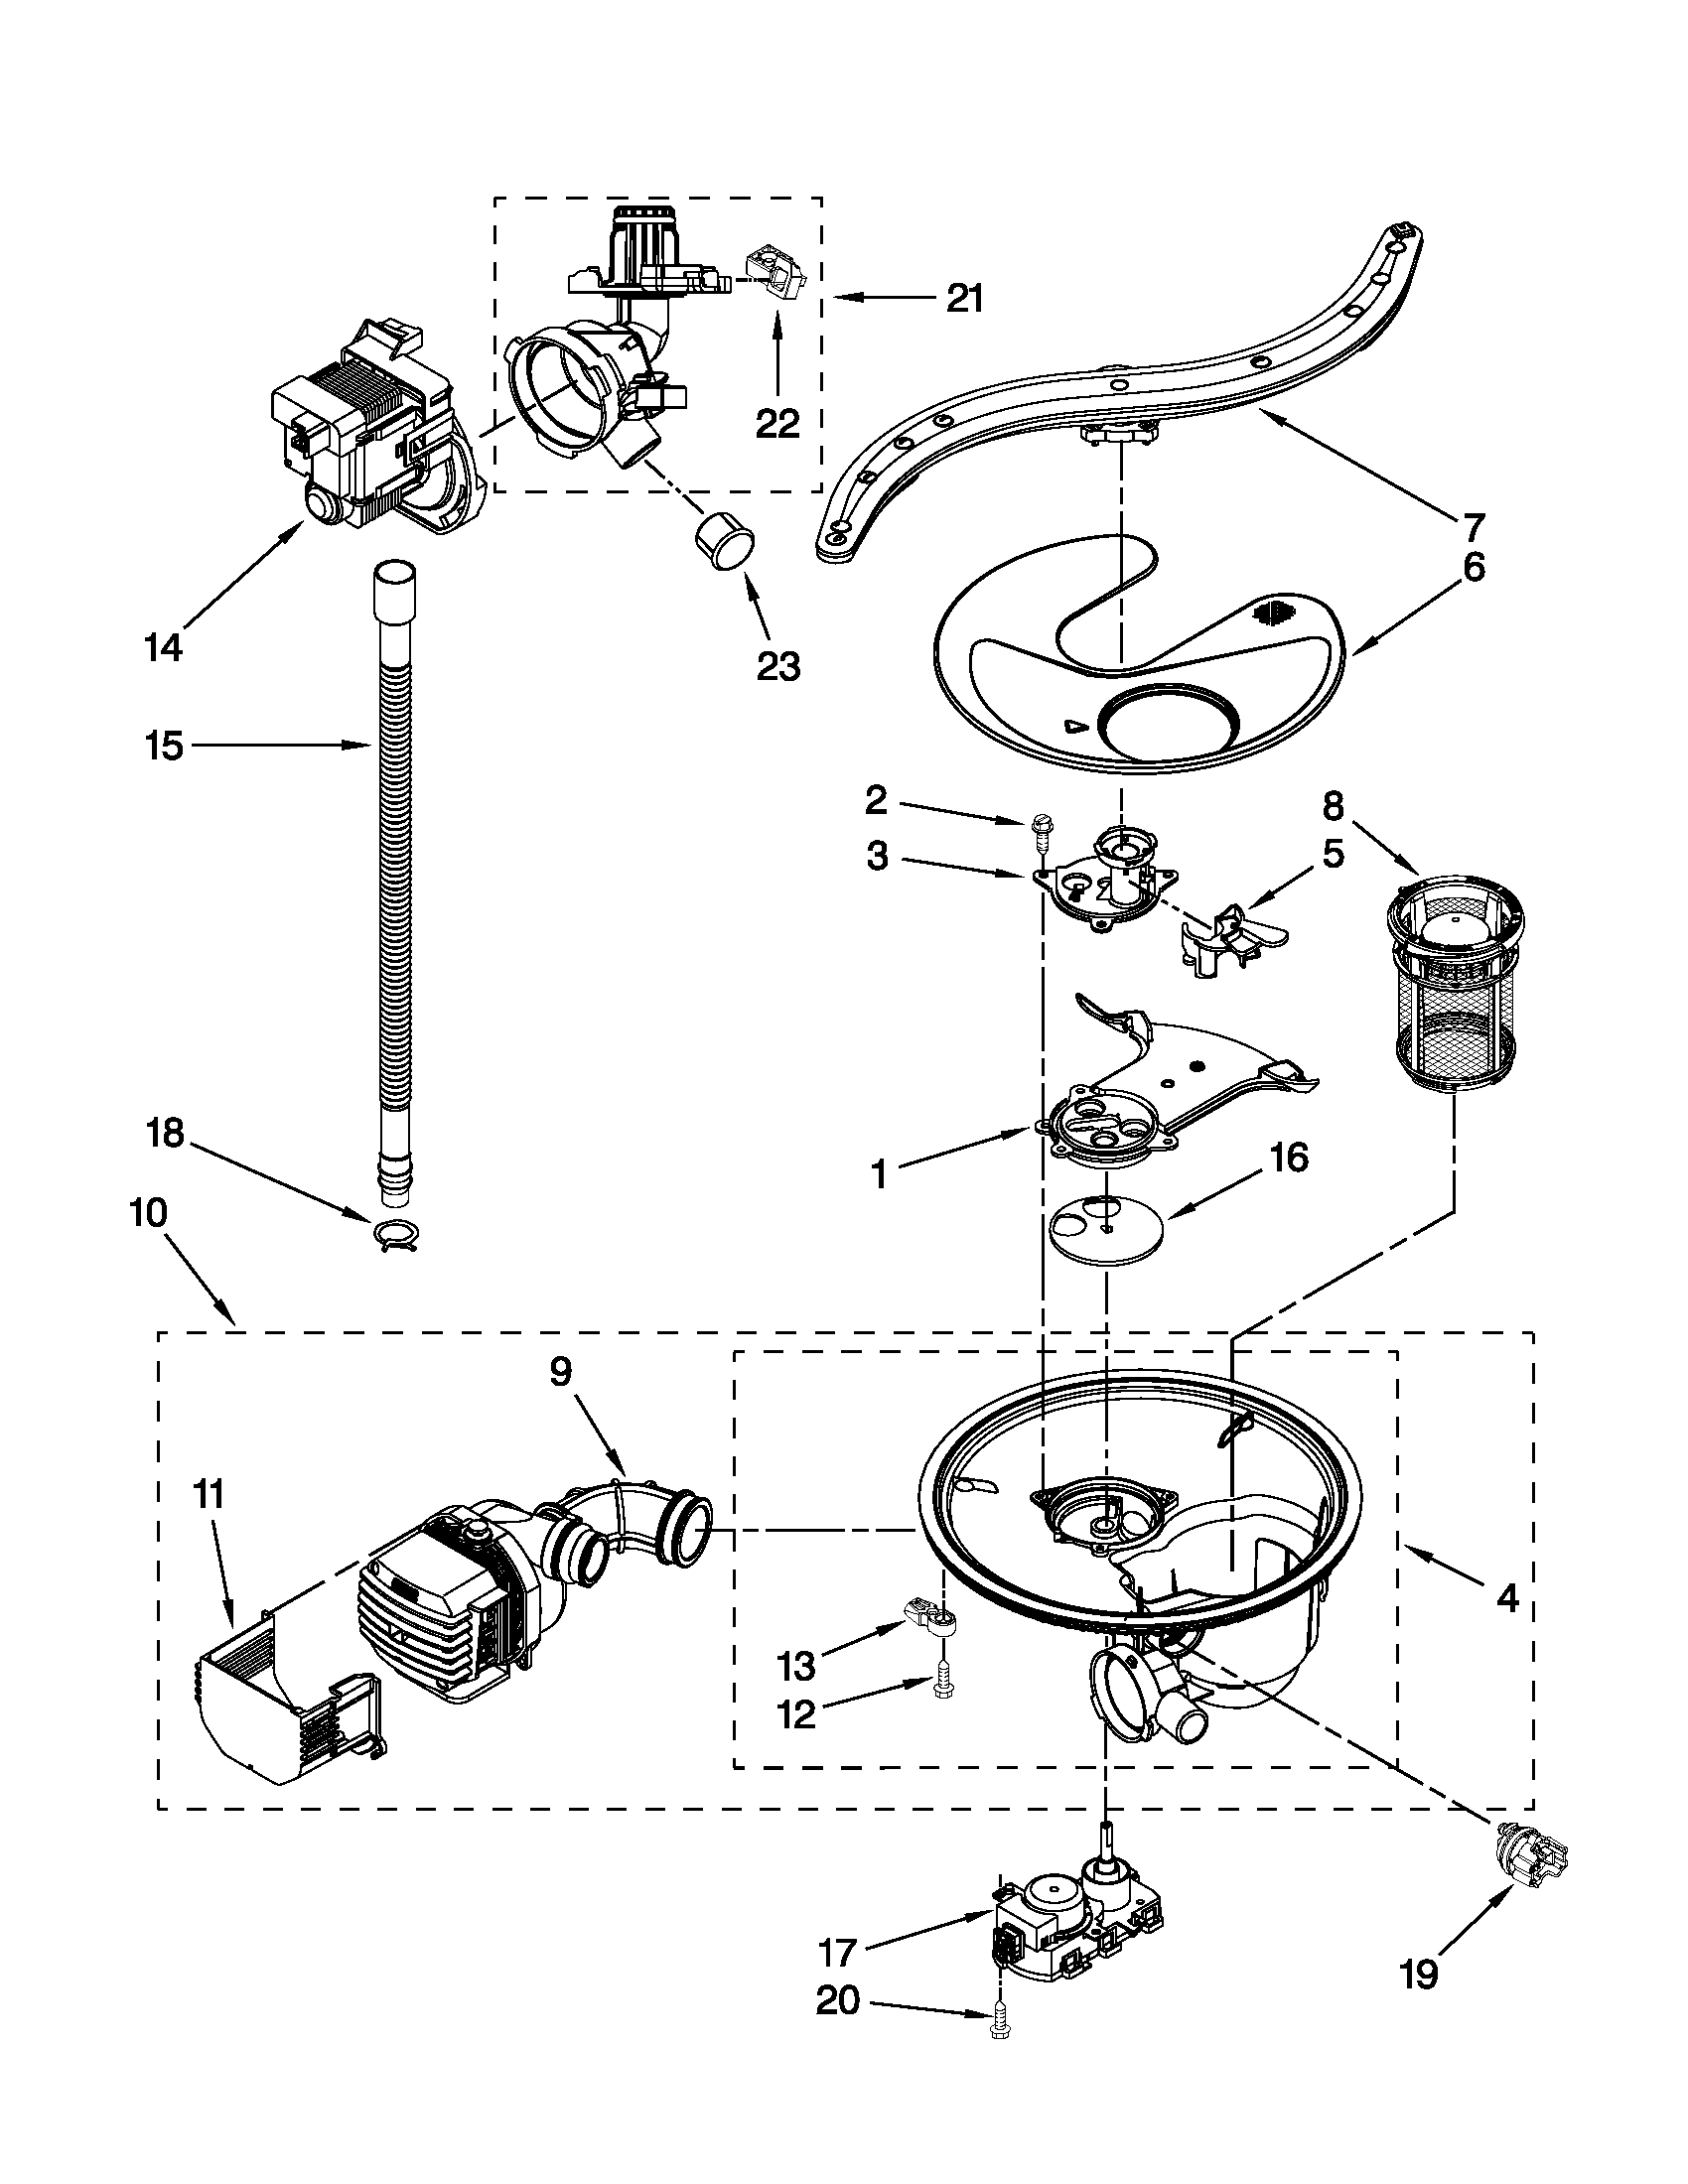 PUMP, WASHARM AND MOTOR PARTS Diagram & Parts List for